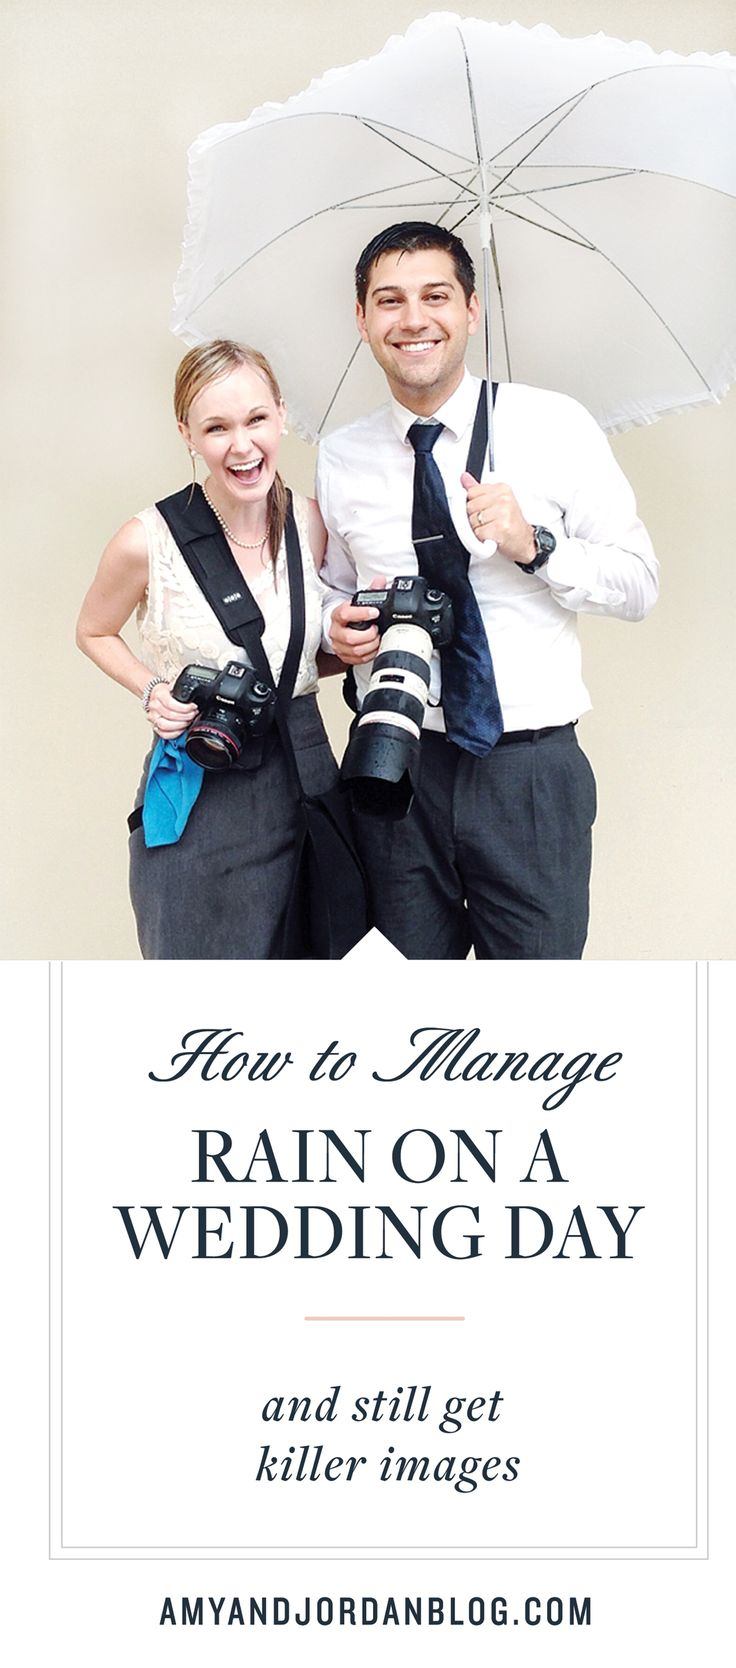 How to manage rain on a rainy day and still get killer shots.